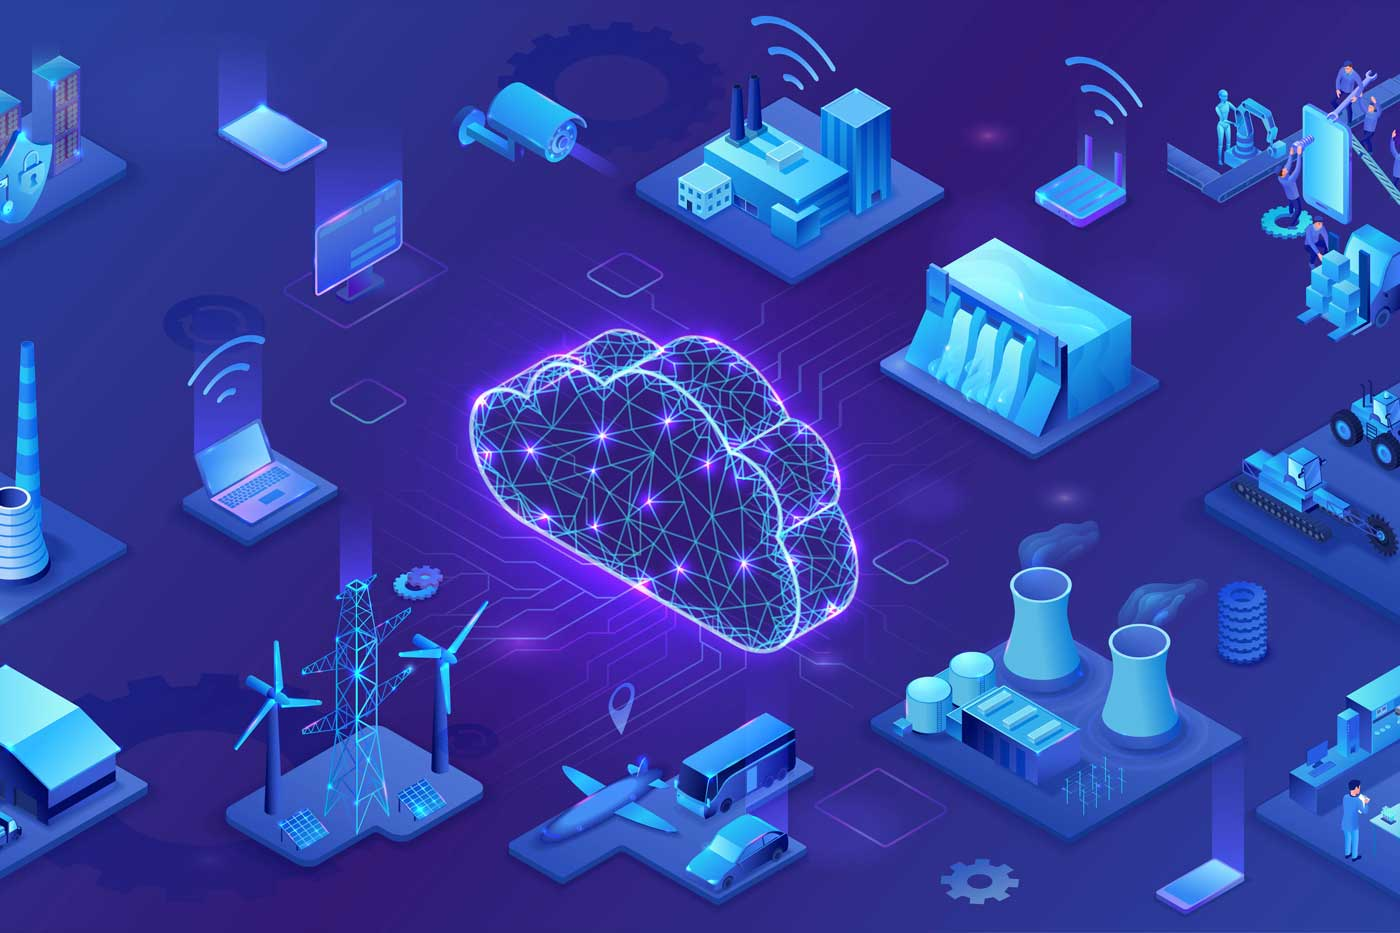 Massive IoT Disruption Coming to an OT Network Near You